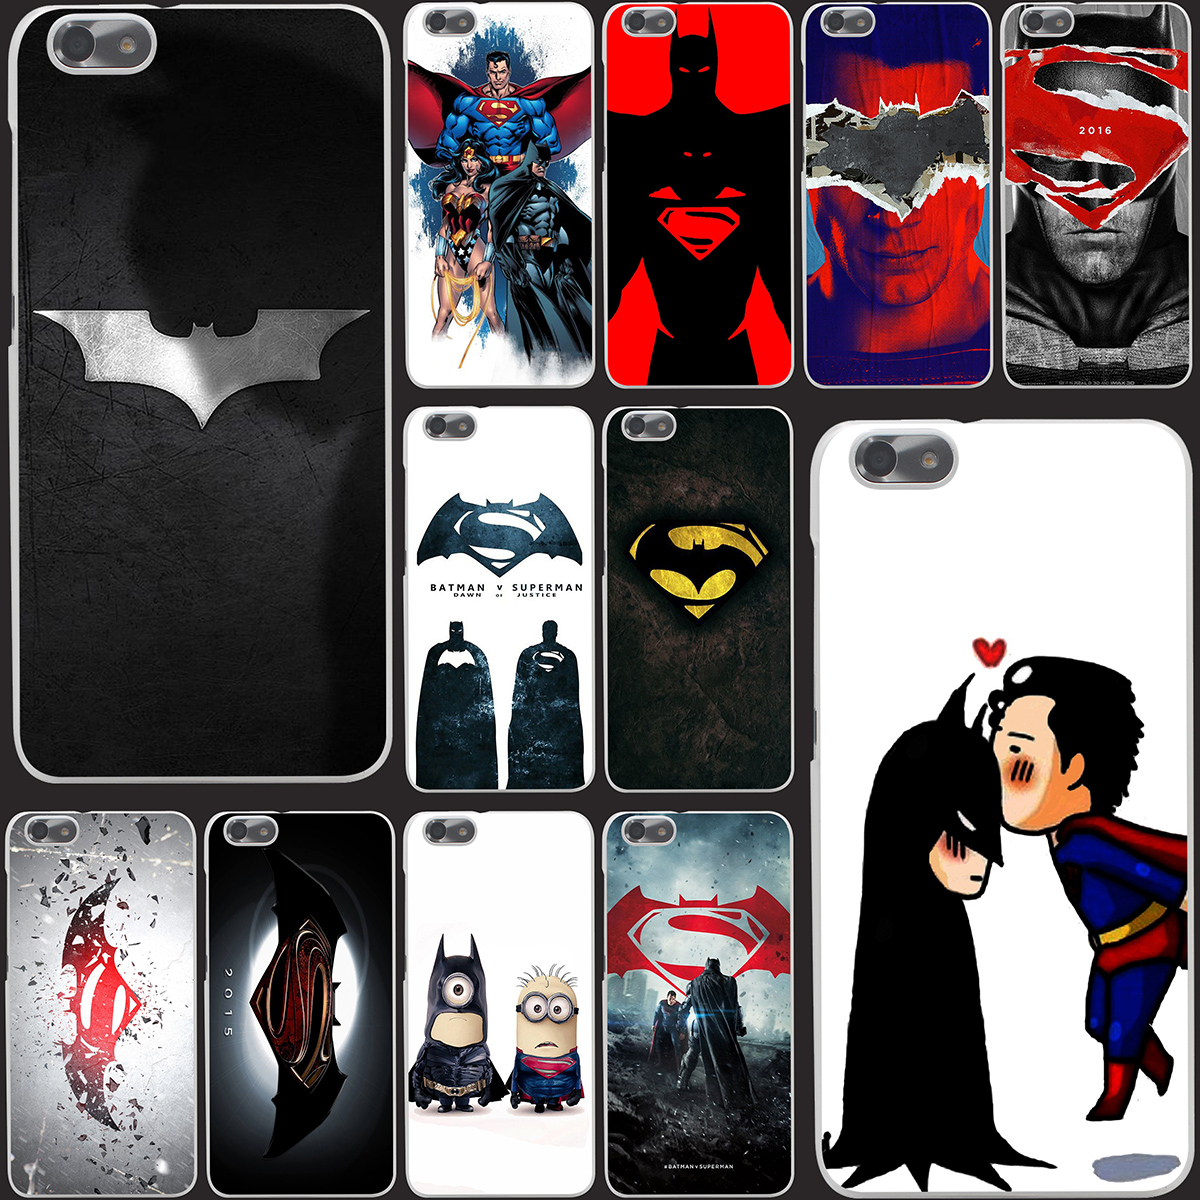 1381-OIE Batman  Superman  Hard Case Transparent Cover for Huawei P6 P7 P8 Lite P9 Lite Plus & Honor 6 7 4C 4X G7